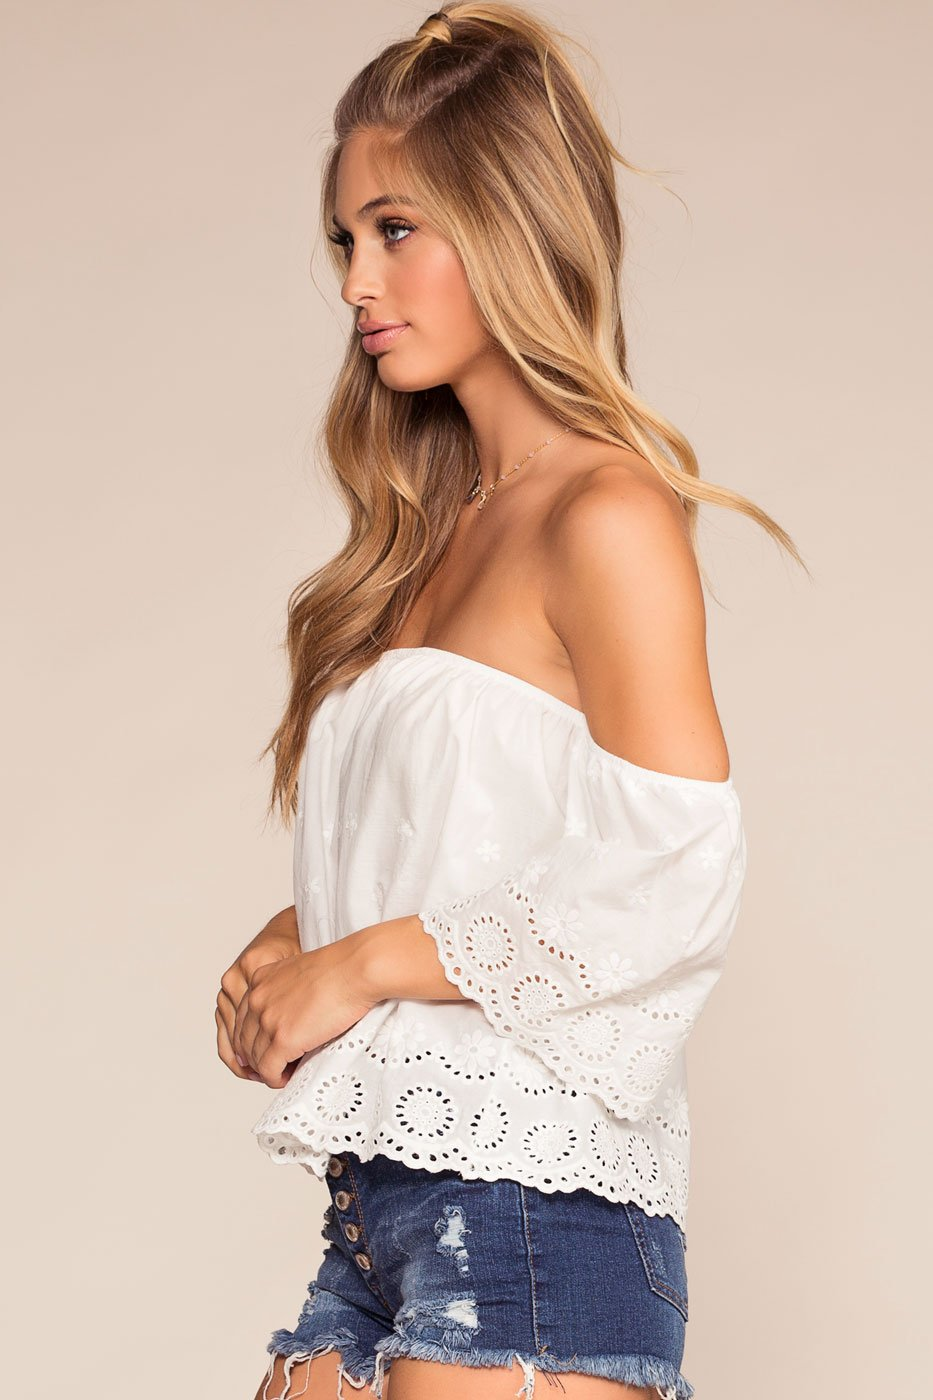 Tops - Just A Moment Off The Shoulder Embroidered Top - White